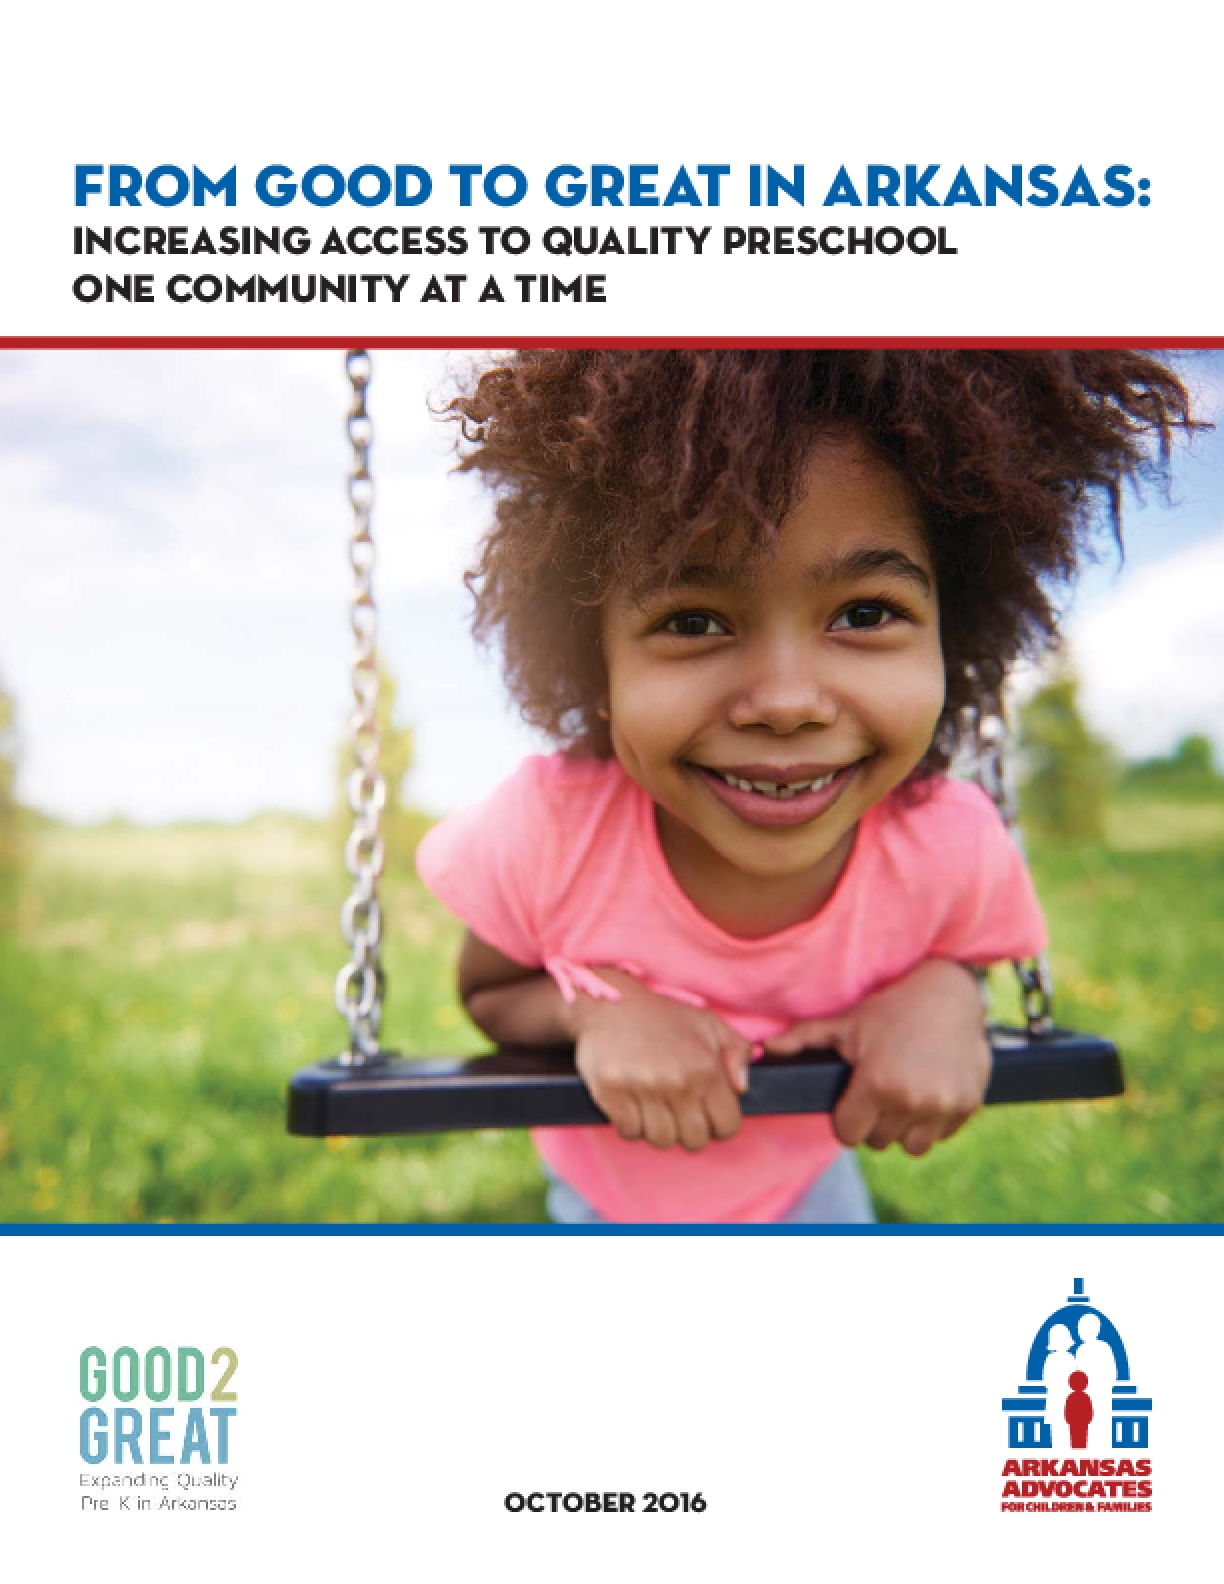 From Good to Great in Arkansas: Increasing Access to Quality Preschool One Community At A Time